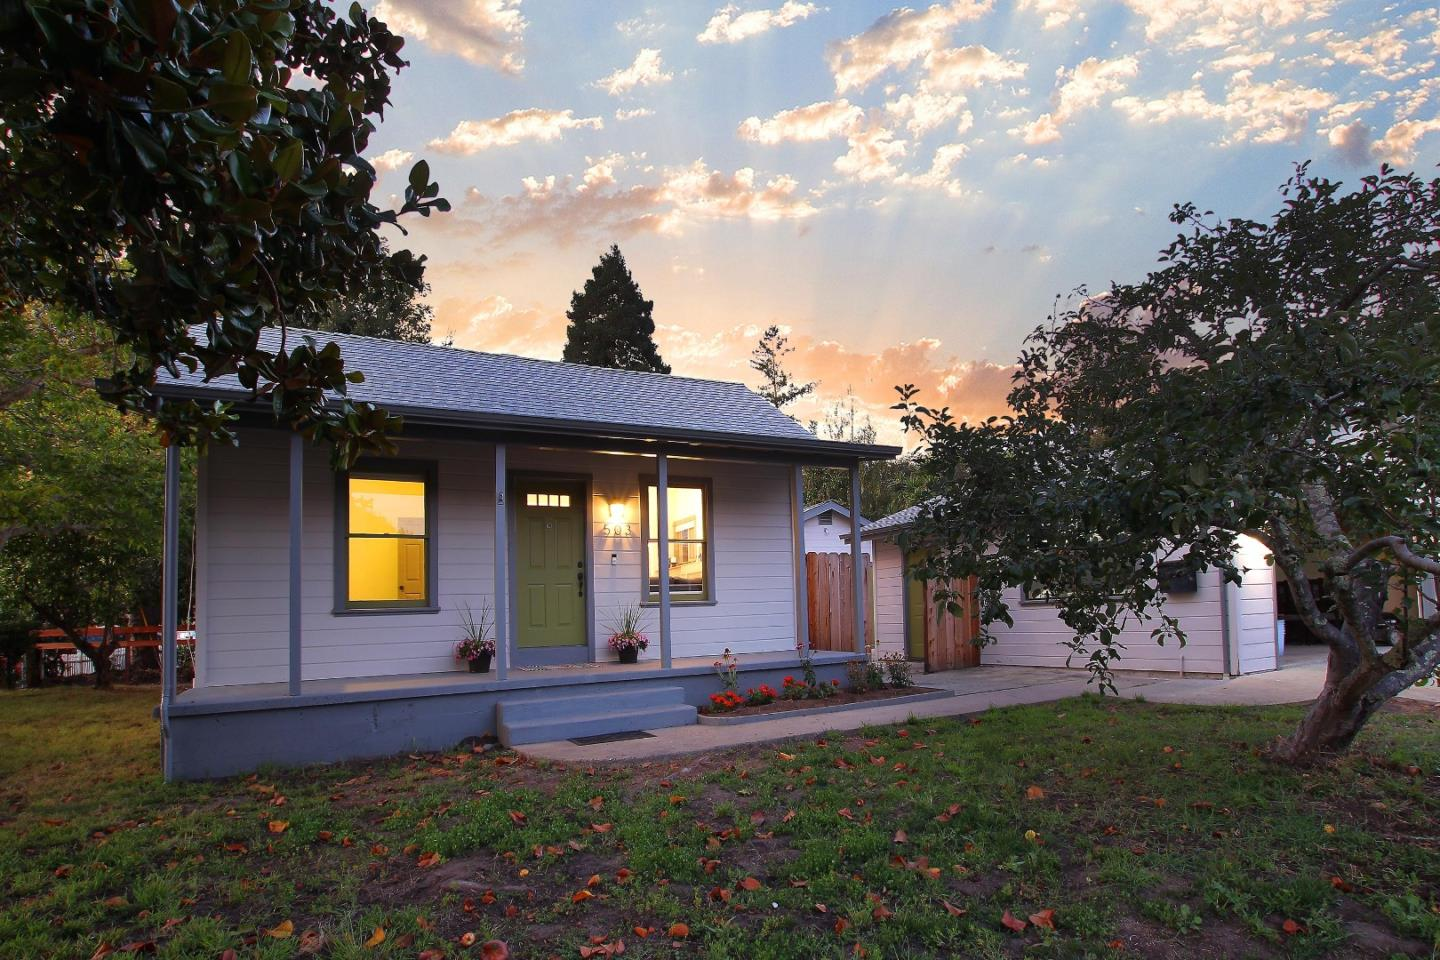 Walk through your front yard to a covered porch entry, inviting you in to this two bedroom one bathroom remodeled space. The main room features a fireplace with stylish built-ins along the wall. The bedrooms are filled with light, with 2 windows in front, and 3 windows in the back which wrap around the corner of the home. The dining area flows to a private patio and the original house then opens to a ground level back bonus studio/living quarters. This area comes ready for your flexible needs. It is perfect for an aging relative, or as an enormous master bedroom if the two front rooms were wanted for different uses.  It is a game room, a rec room, a studio. The area has three sets of double doors that open to enclosed outdoor gardens. It includes a bedroom with built-in closets and a partially equipped elderly accessible bathroom. The garden is an orchard and a gardener's delight. The back planter beds are currently thriving with an abundance of tomatoes. Feel free to take one.